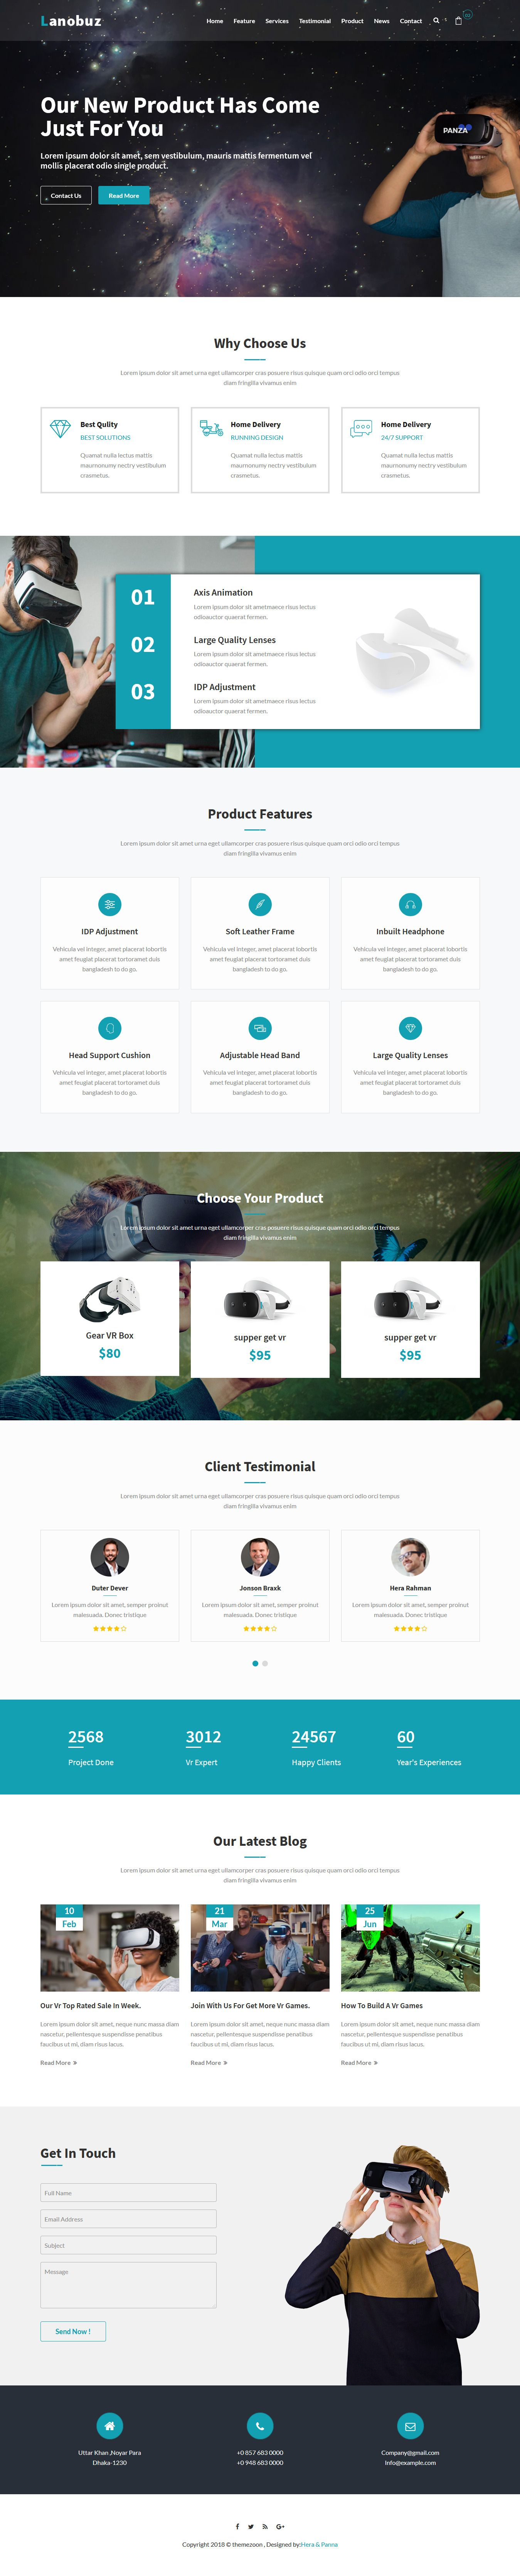 Lanobuz - Single Product Landing Page  Screenshot 1